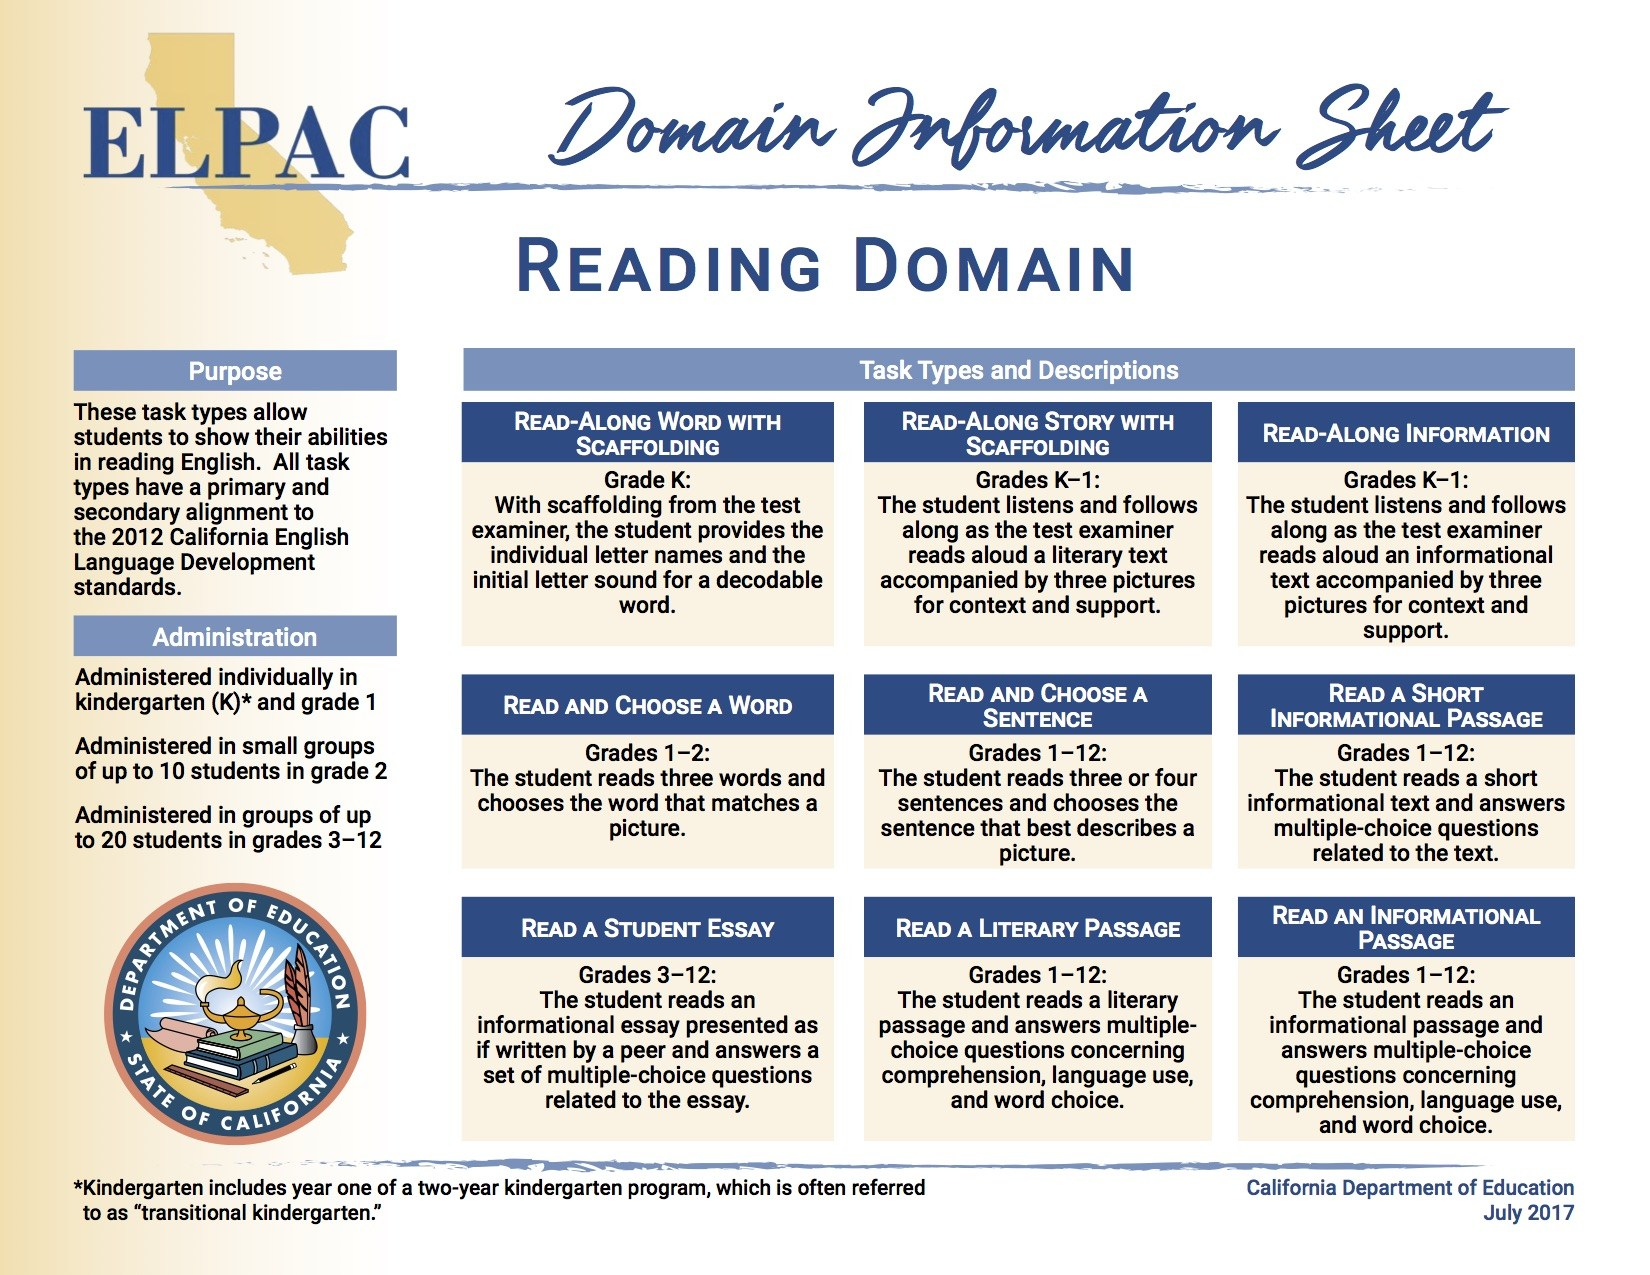 ELPAC Reading Domain Information Sheet